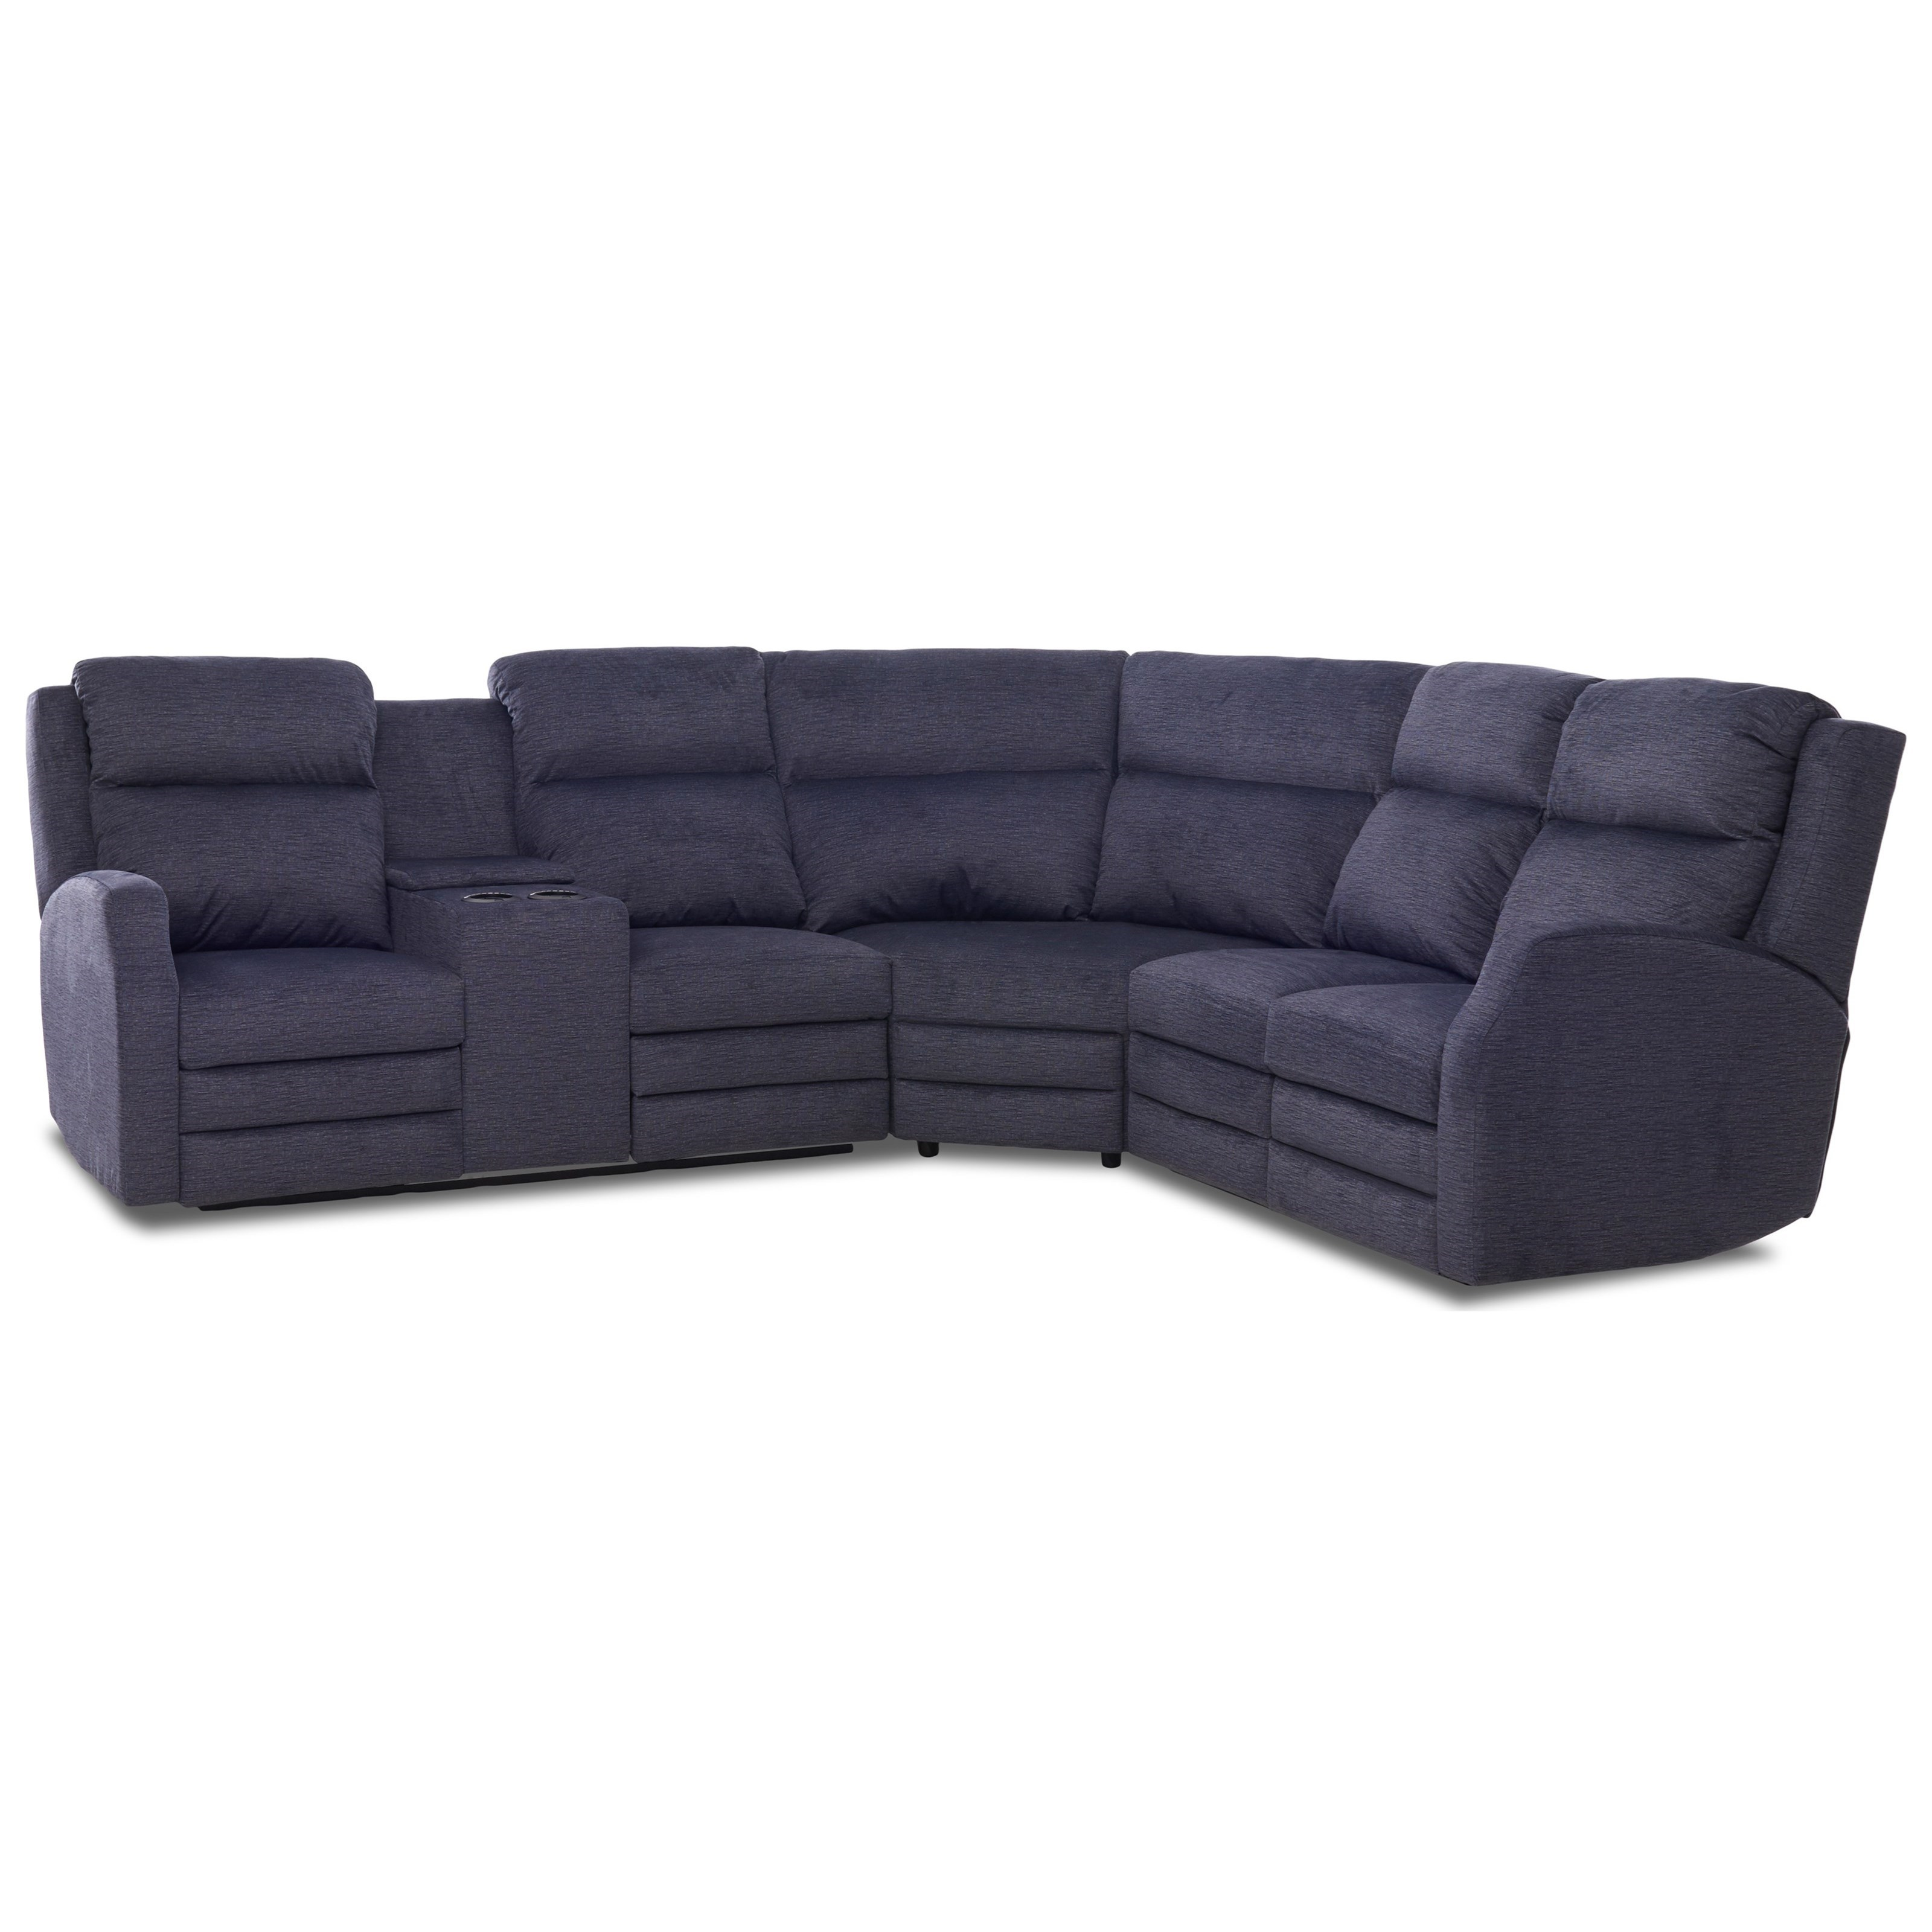 Kamiah 4 Seat Power Reclining Sectional Sofa by Klaussner at Johnny Janosik